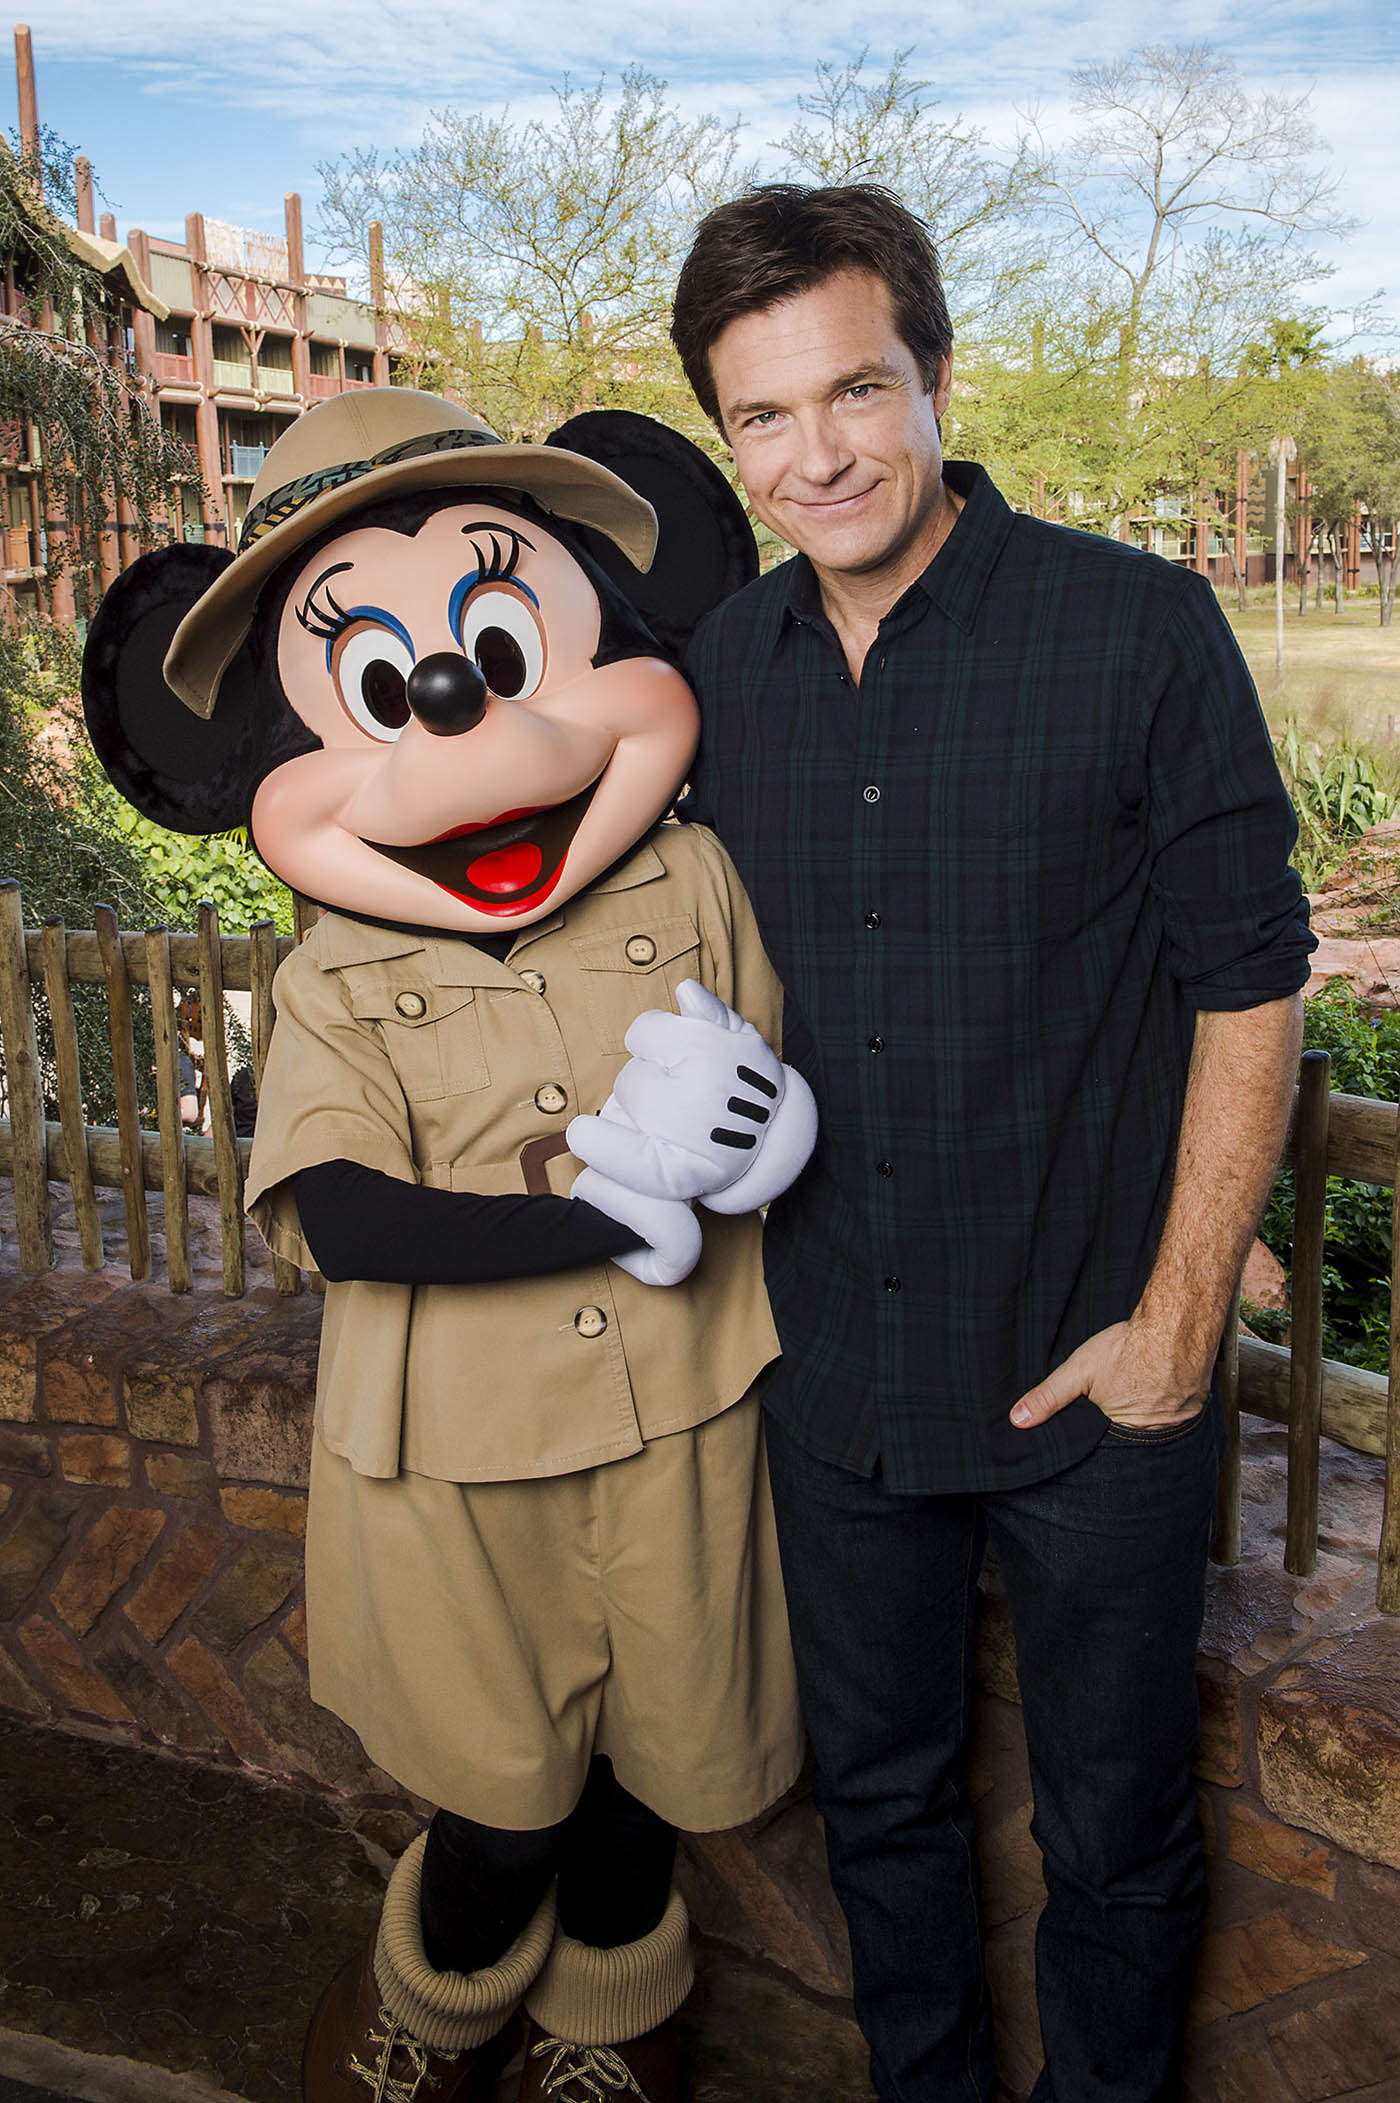 """(FEB. 21, 2016): Actor Jason Bateman poses with Minnie Mouse Feb. 21, 2016 at Disney's Animal Kingdom Lodge at Walt Disney World Resort during a press junket for Walt Disney Animation Studios' newest film, """"Zootopia."""" Bateman voices con artist fox Nick Wilde in the upcoming animated film, set for release on March 4, 2016. (Chloe Rice, photographer)"""